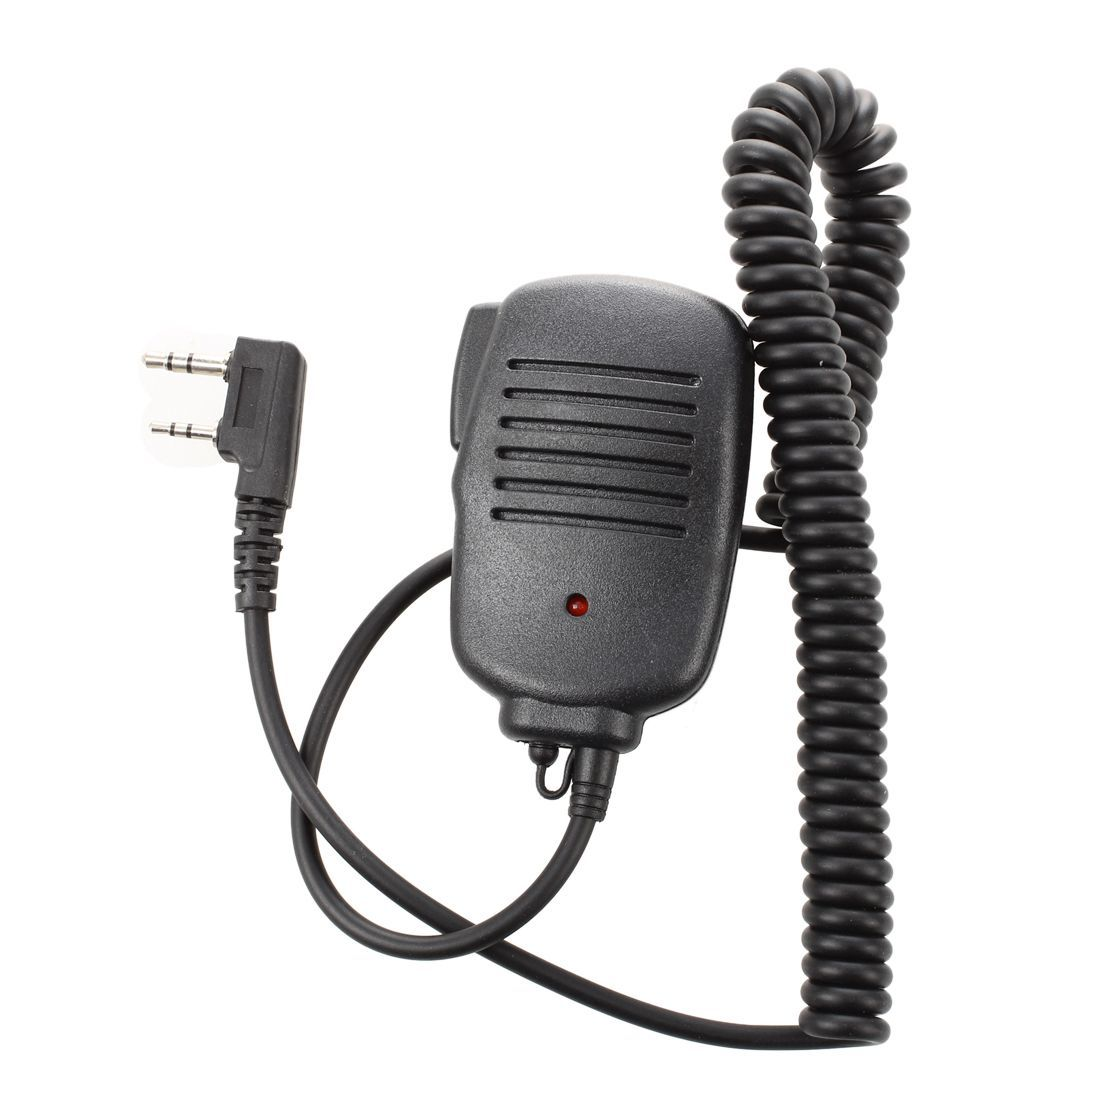 Two-way Handheld Speaker Mic Microphone for BaoFeng UV-5R/5RA/5RB 666S 888S NEW